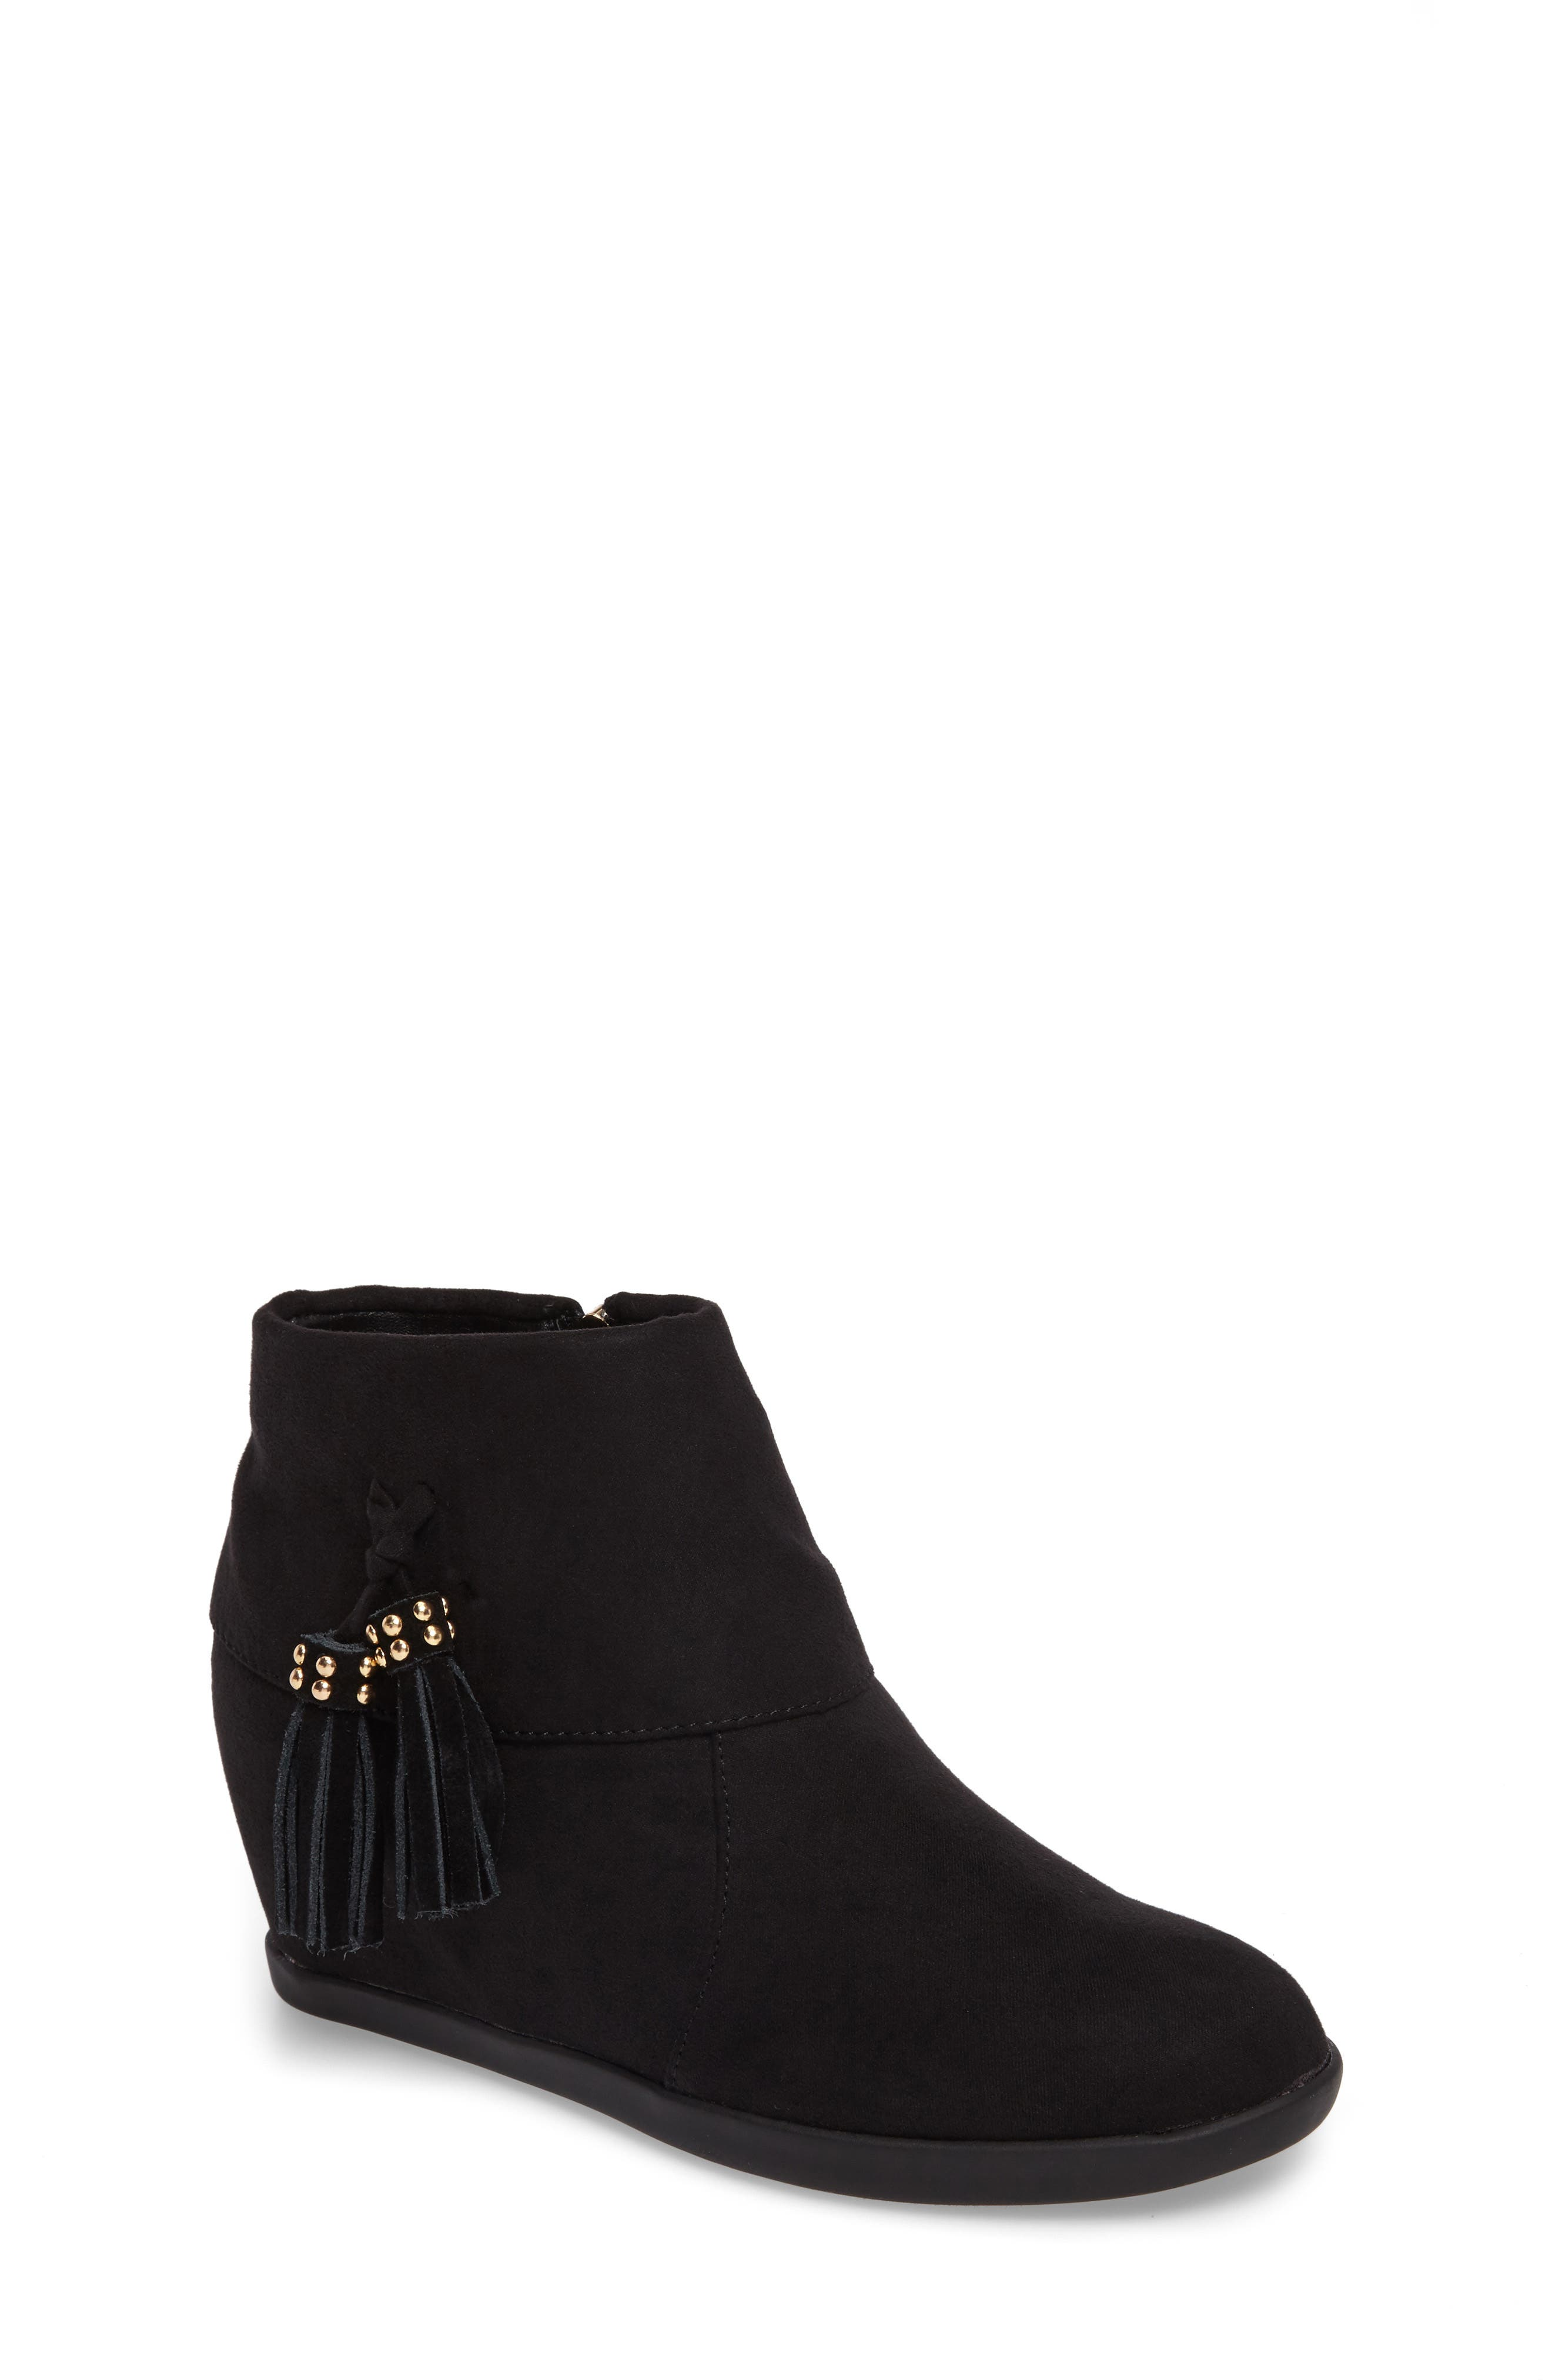 KENNETH COLE NEW YORK Valentina Cuff Concealed Wedge Bootie